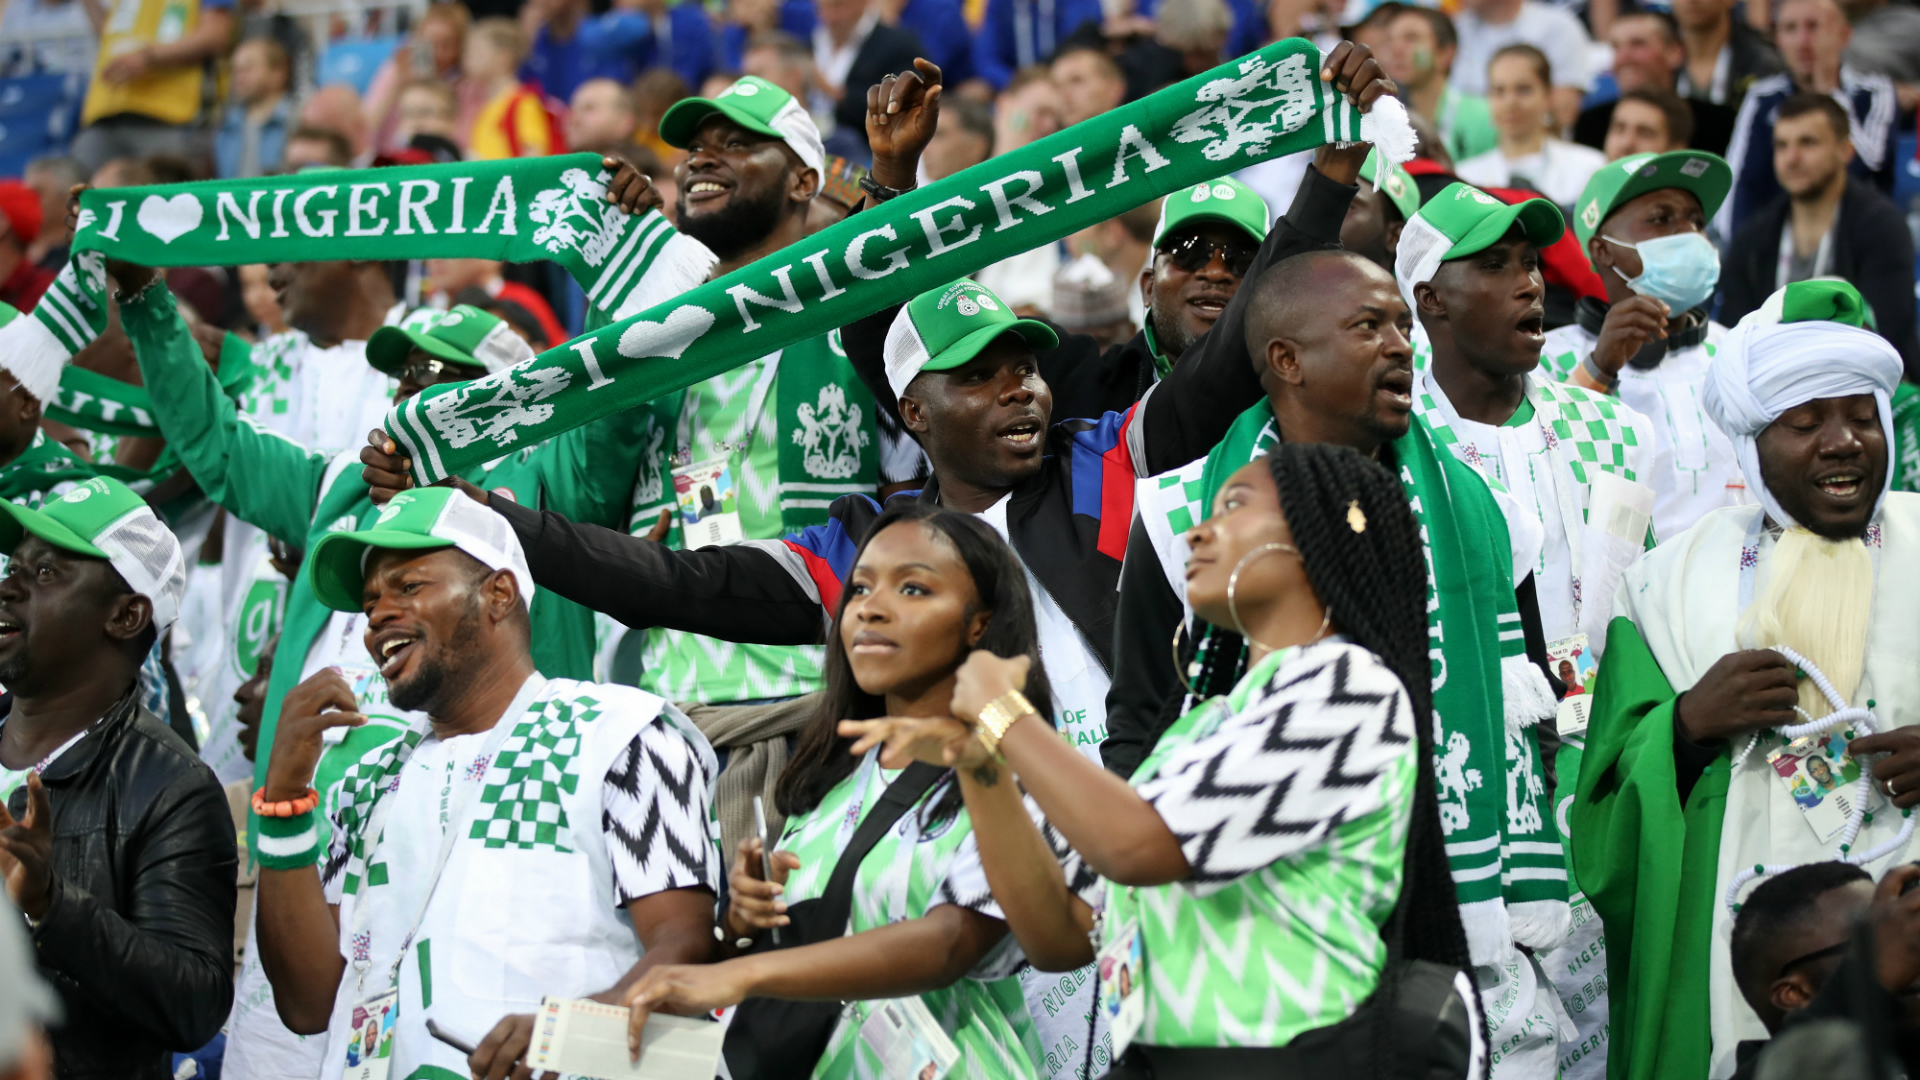 When is the game between Mexico and Nigeria and how can I watch?